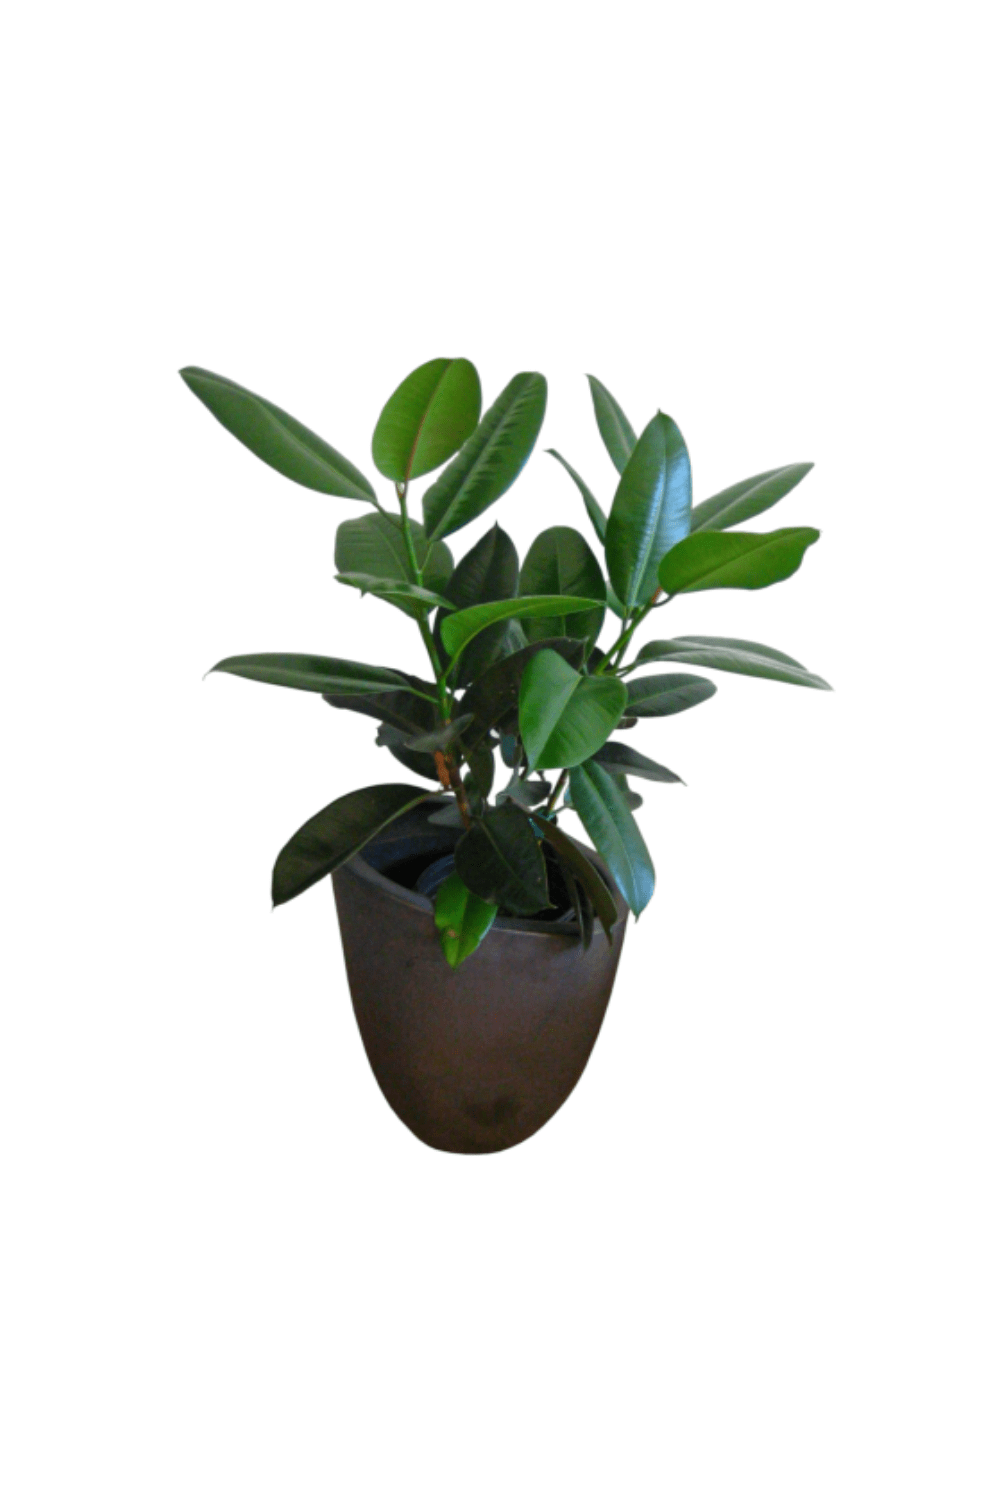 How to Care for Your Rubber Tree